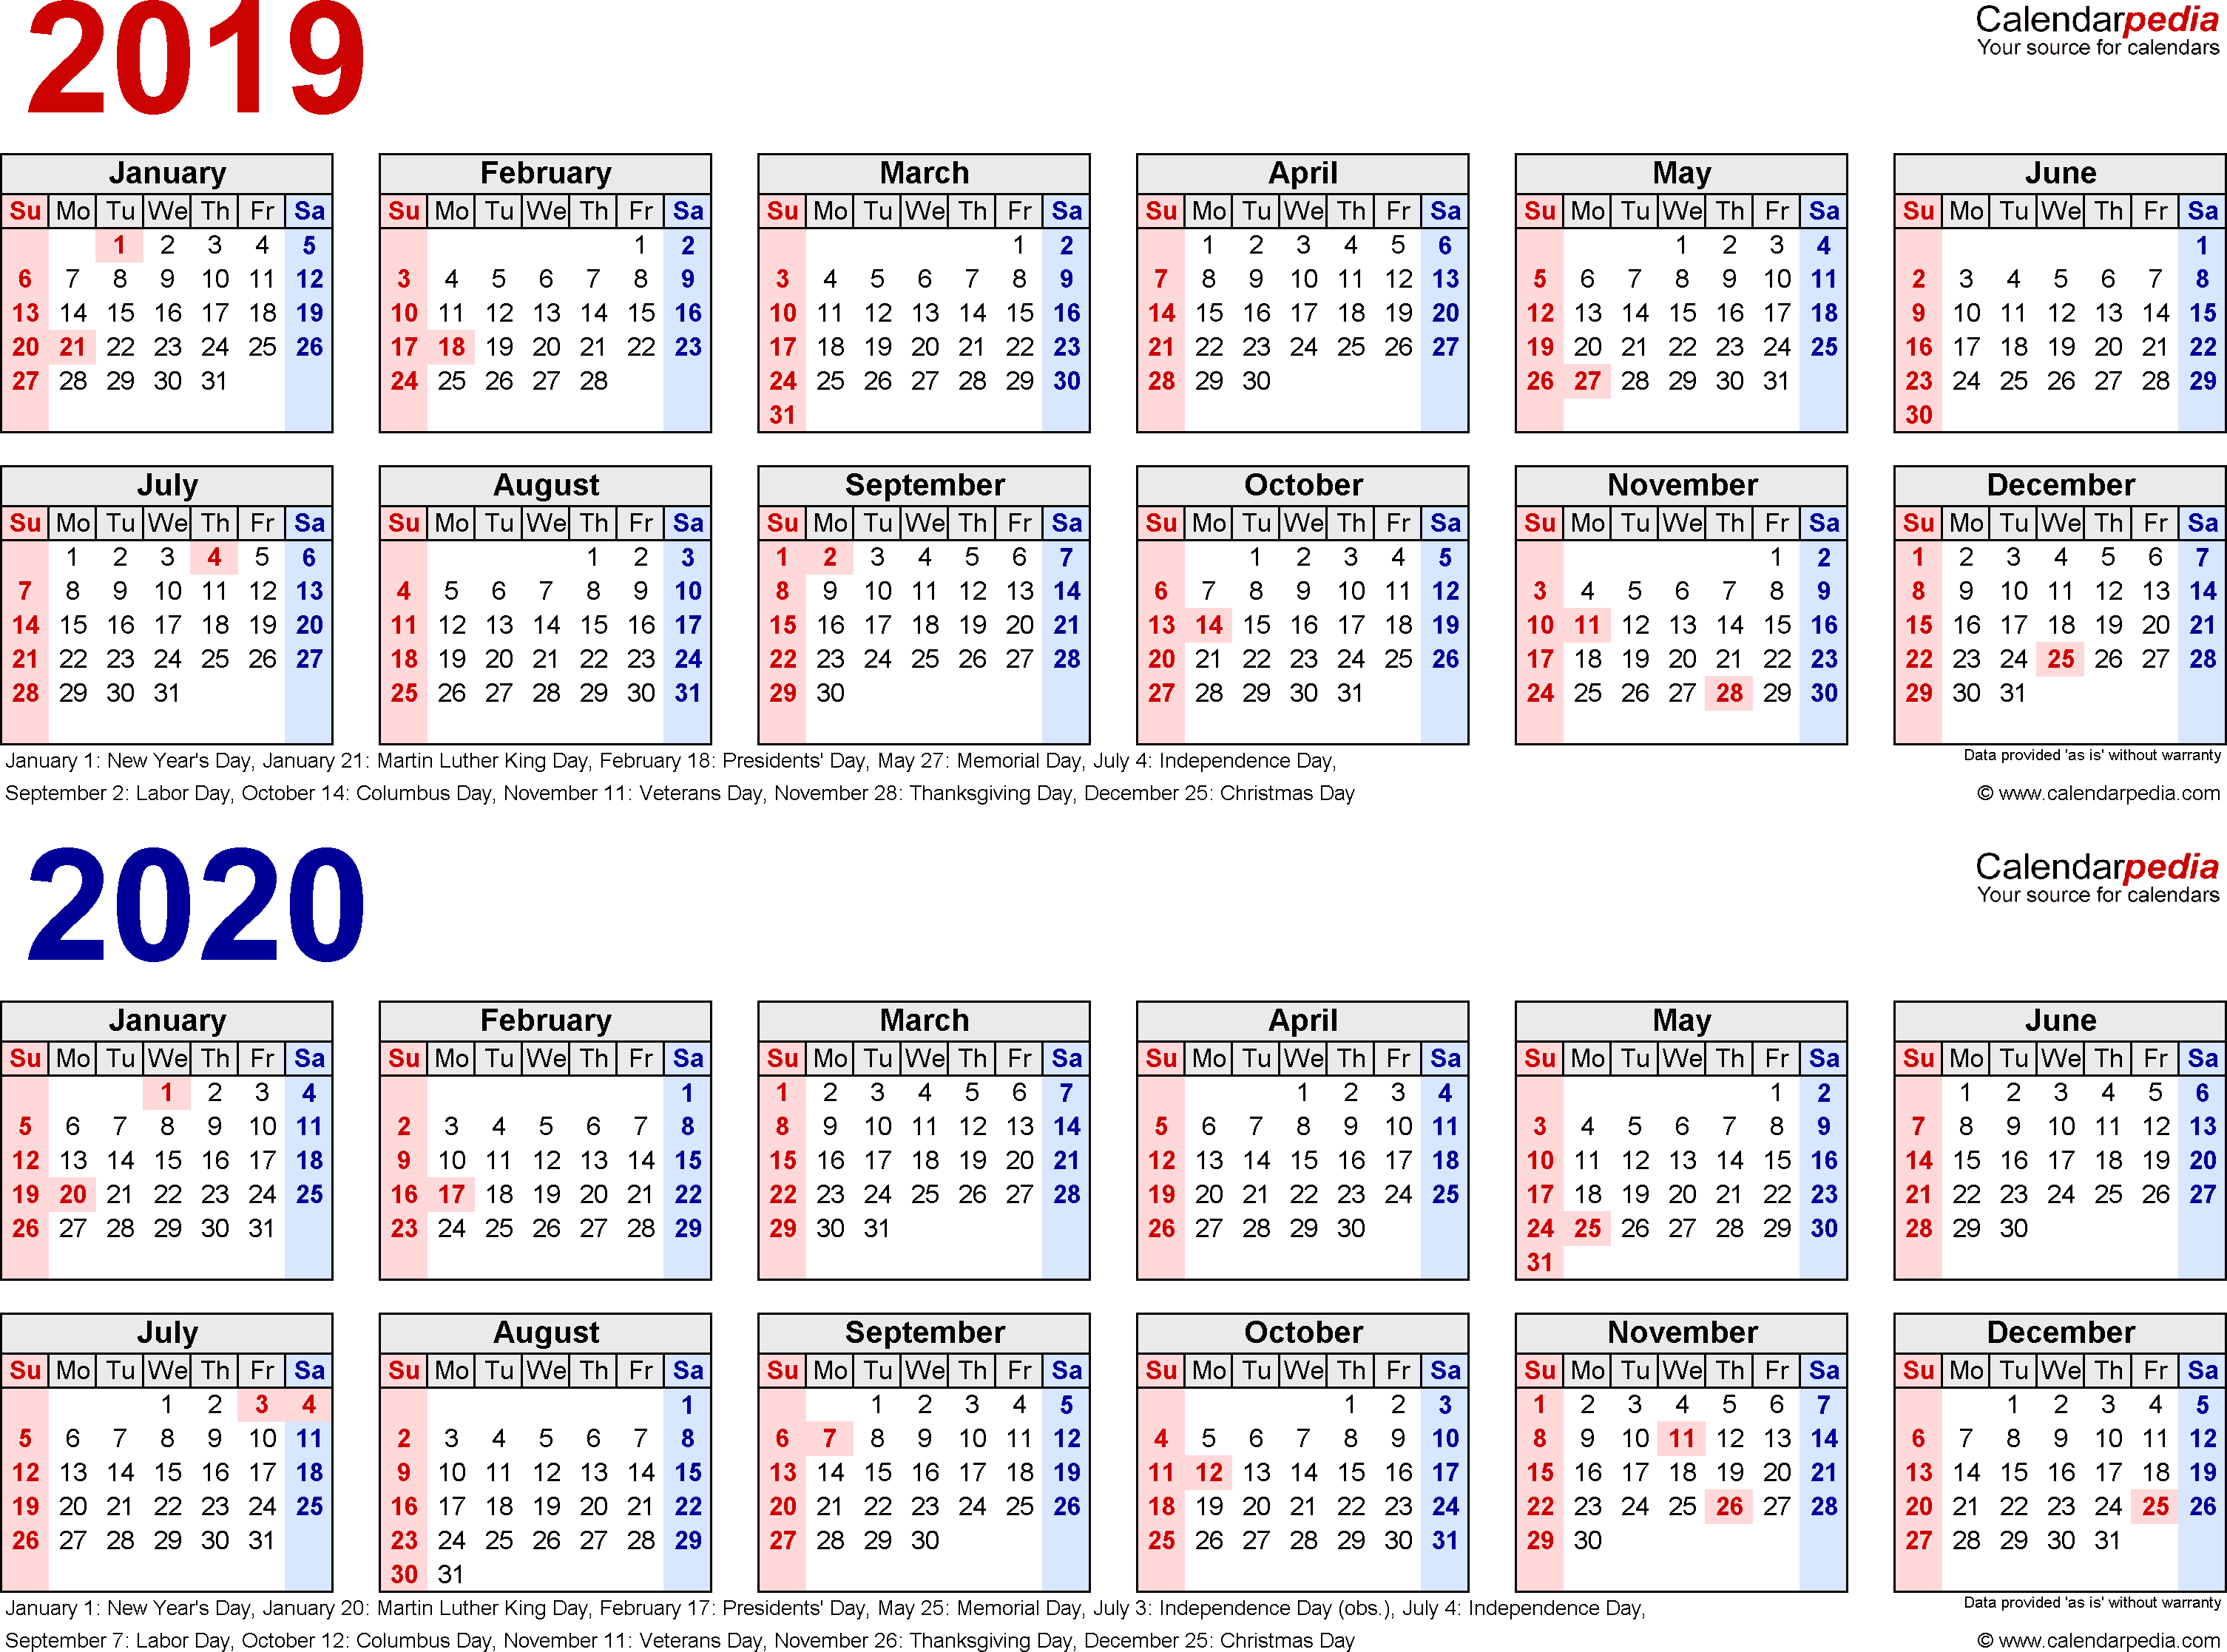 2019-2020 Calendar - Free Printable Two-Year Pdf Calendars intended for July 2019 - July 2020 Calendar Printable Free